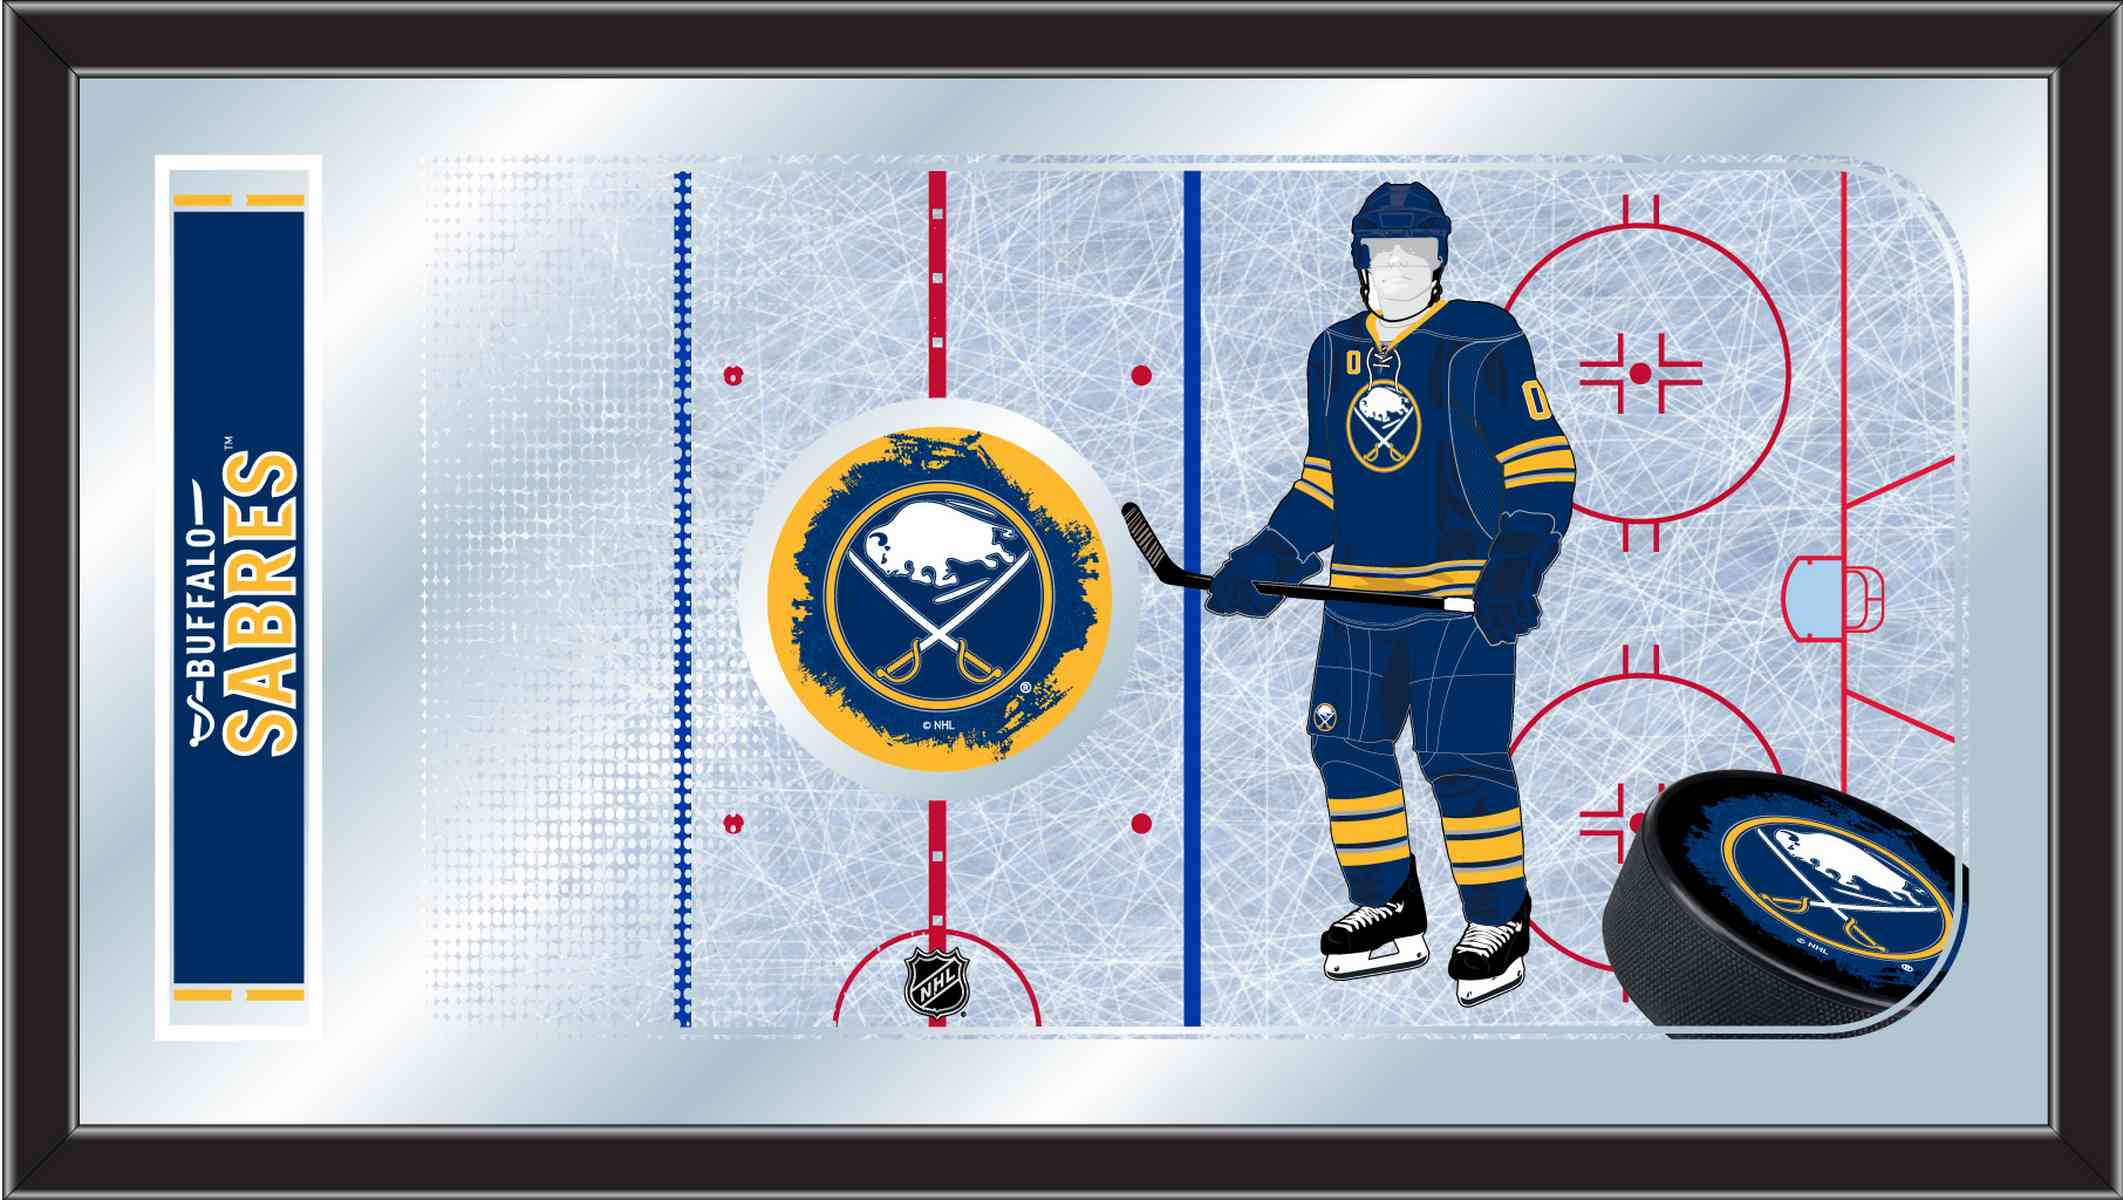 Buffalo Sabres 15quot x 26quot Hockey Rink Mirror Zerbee : MRinkBufSab from zerbee.com size 2123 x 1200 jpeg 174kB